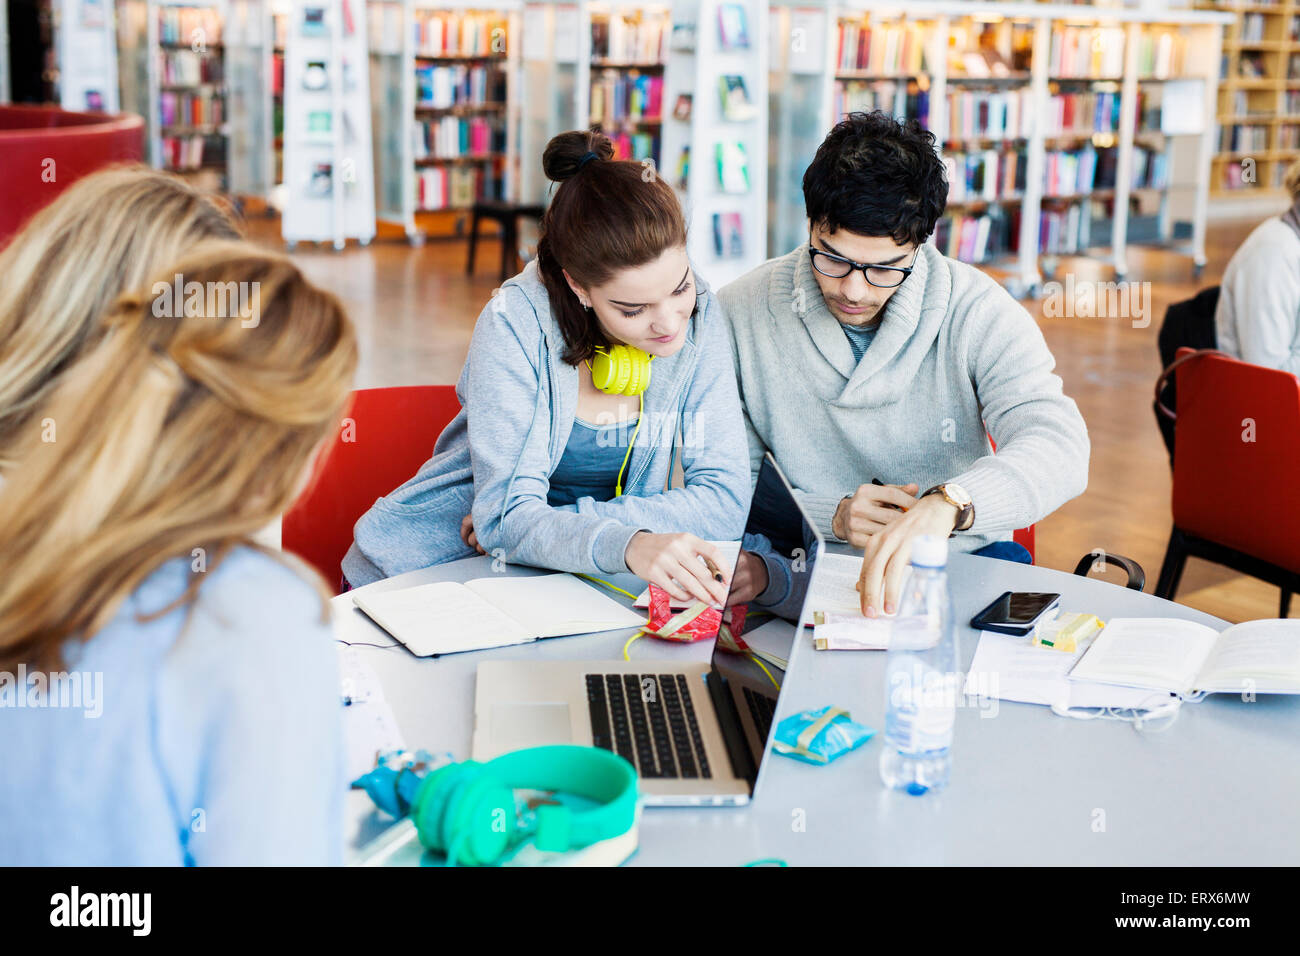 Multiethnic friends discussing notes at table in library - Stock Image